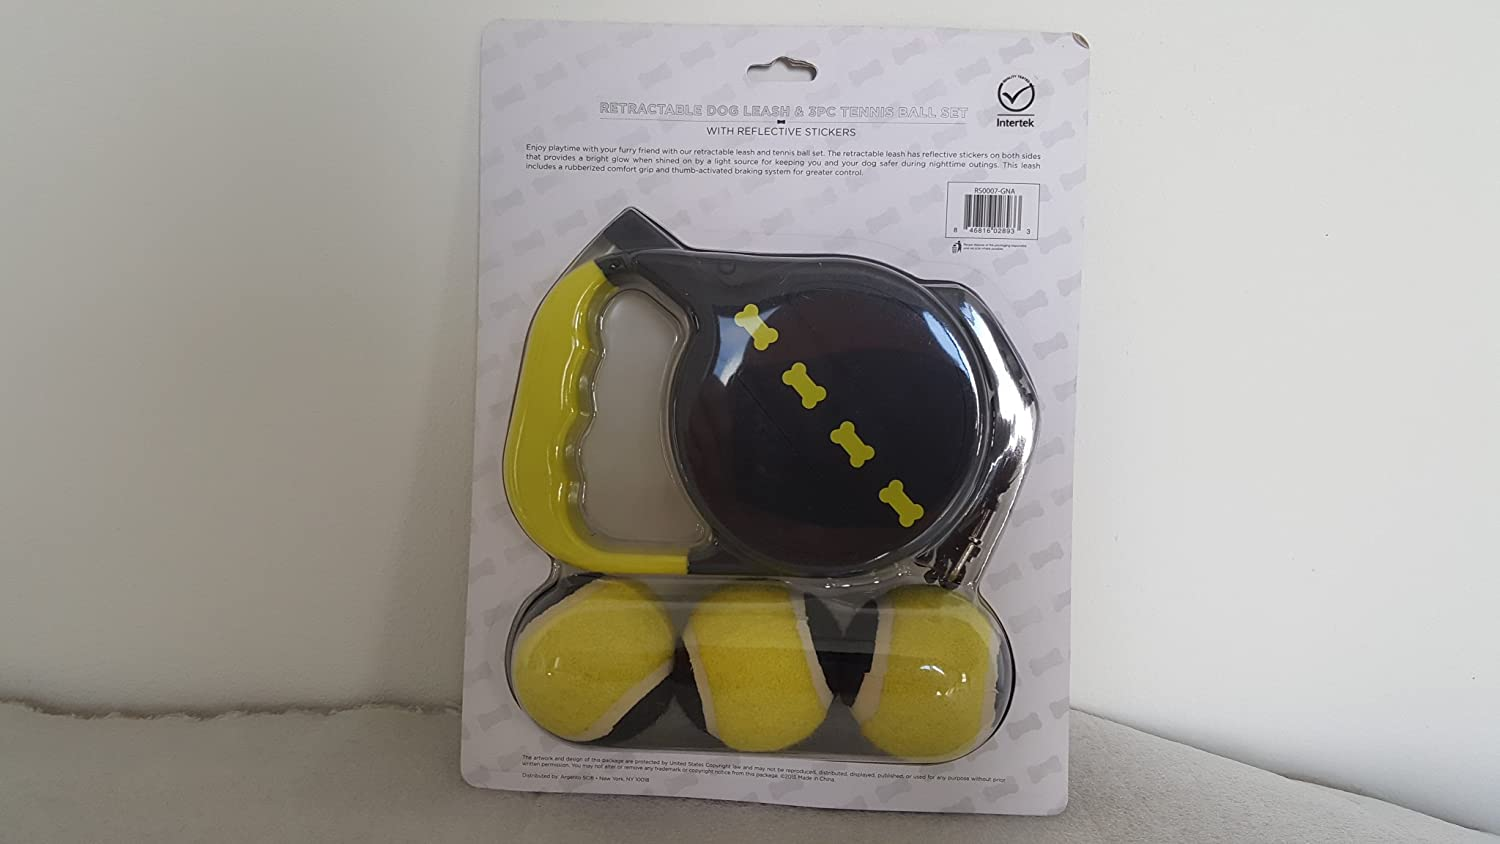 25ft Retractable Dog Leash & 3pc Tennis Ball Set with Reflective Stickers